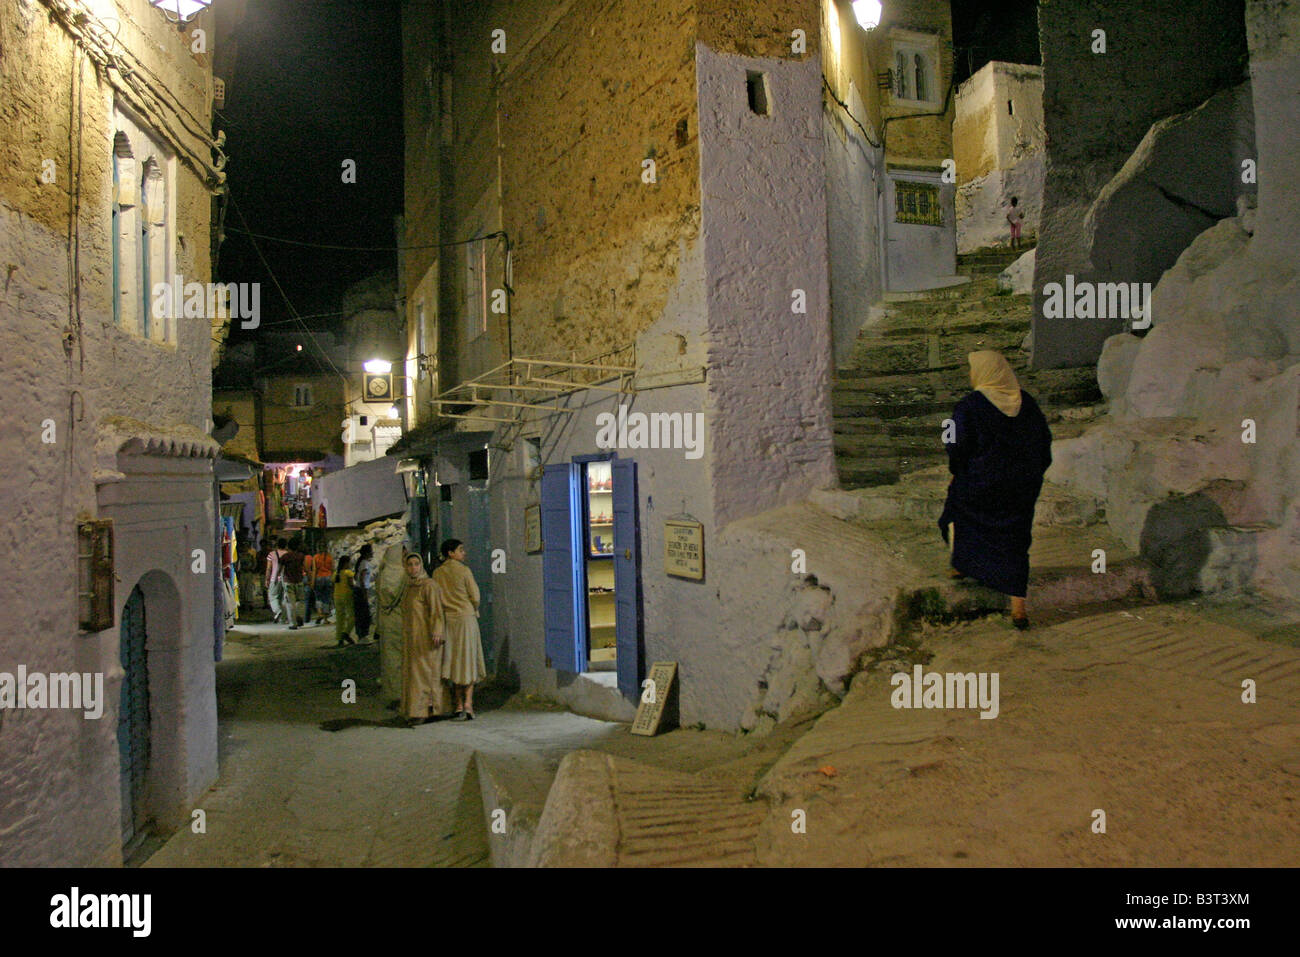 The streets of Chefchaouen at night. After the heat of the day the streets are busy until late. - Stock Image